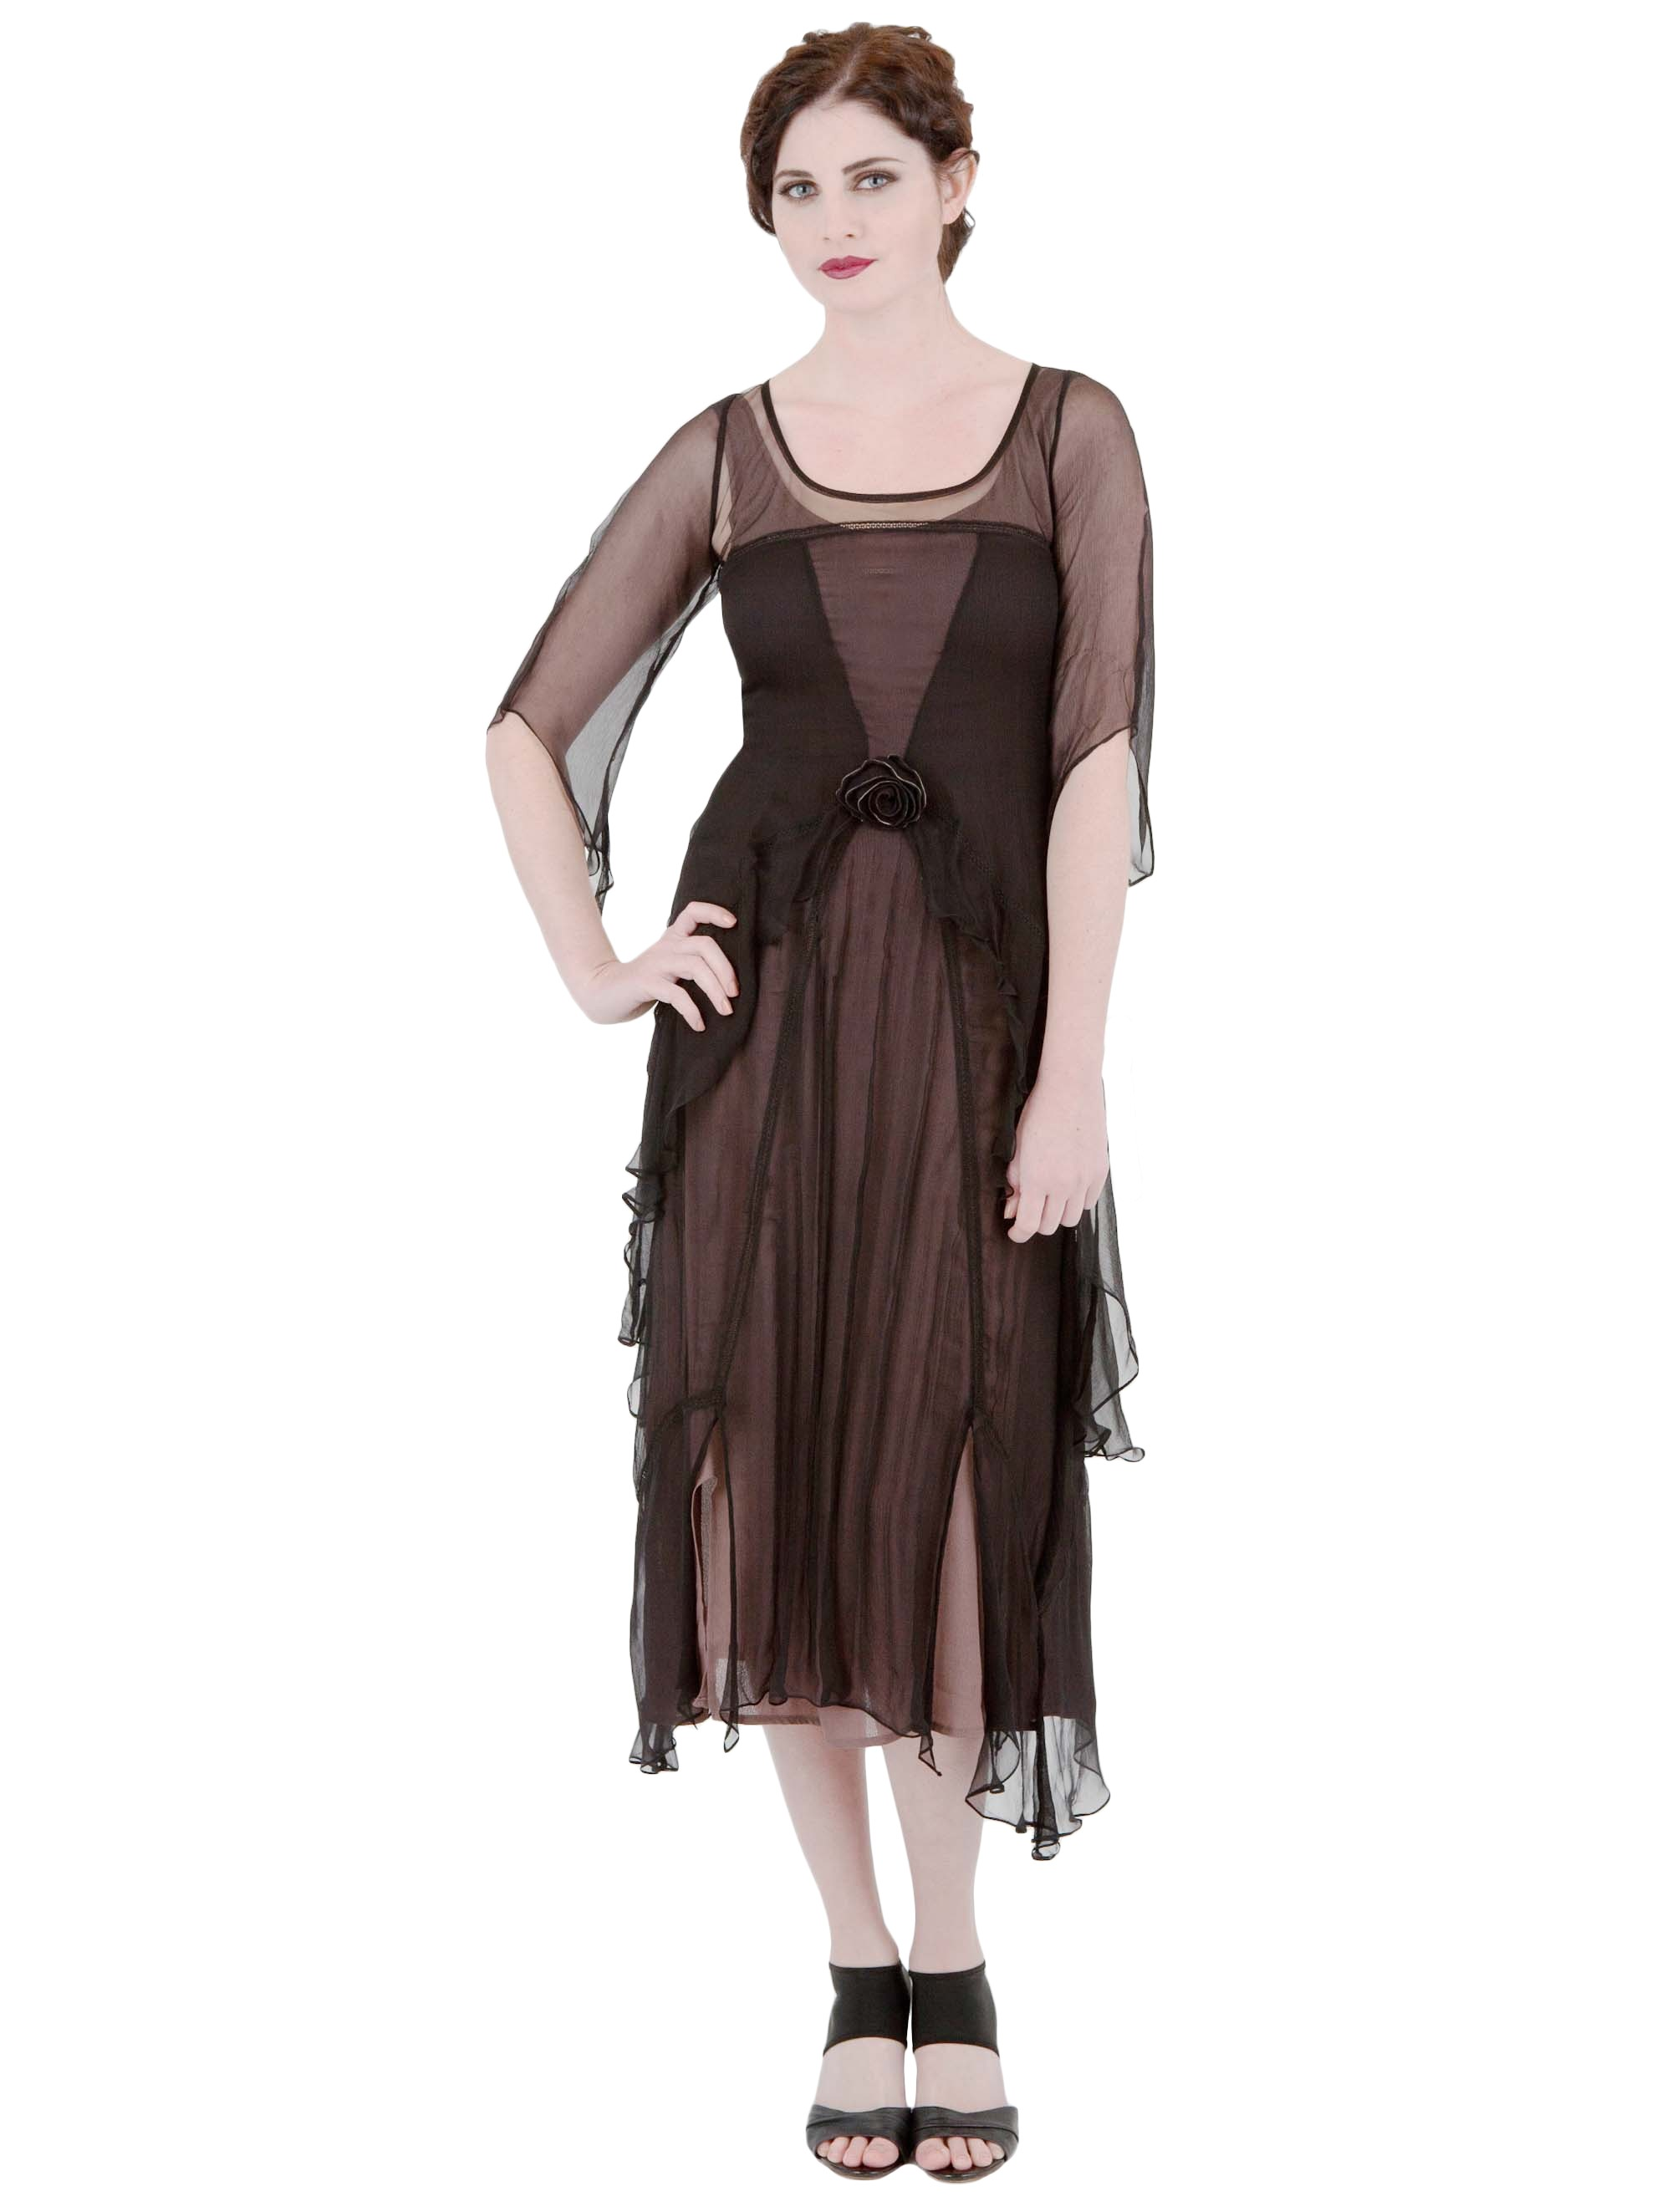 Great Gatsby Party Dress in Black/Coco by Nataya - SOLD OUT